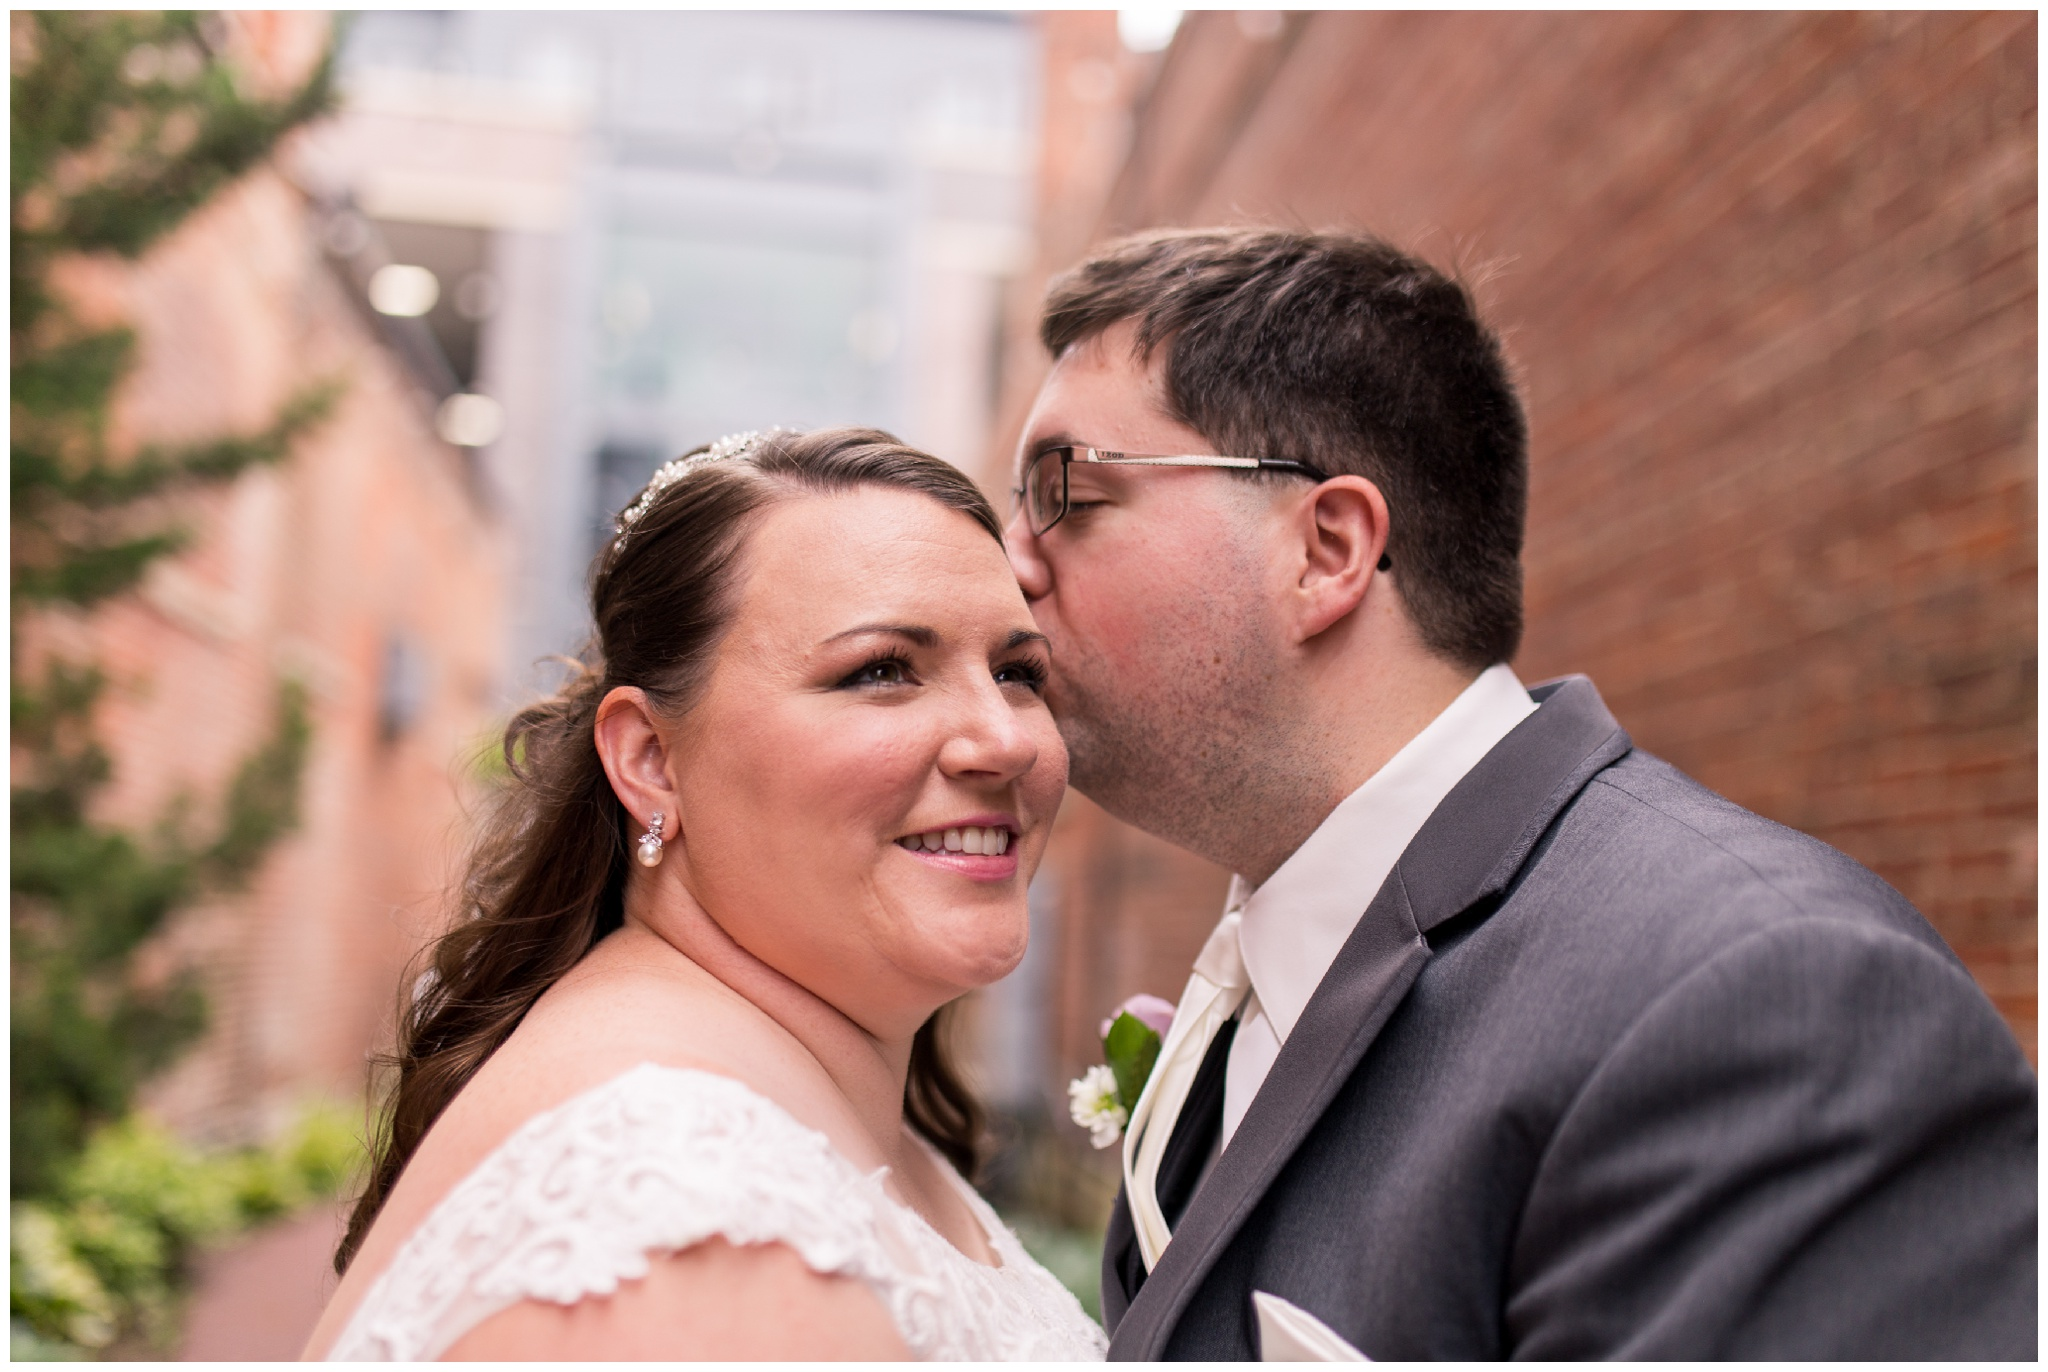 groom kisses bride's forehead before wedding in downtown Kokomo